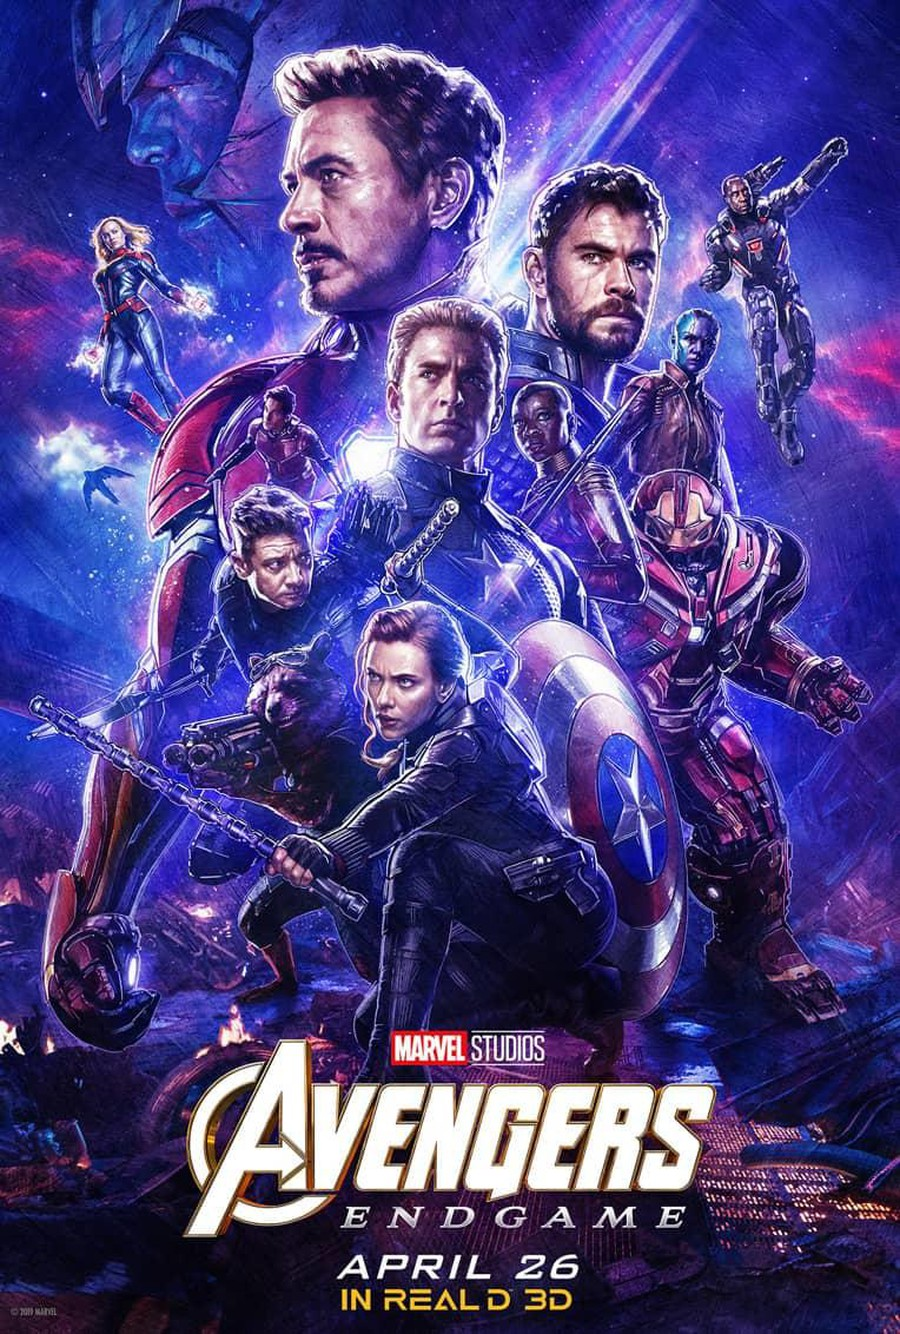 The Avengers saga, along with all the smash hits Marvel Studios has produced, has redefined our perceptions of the movie-going experience.